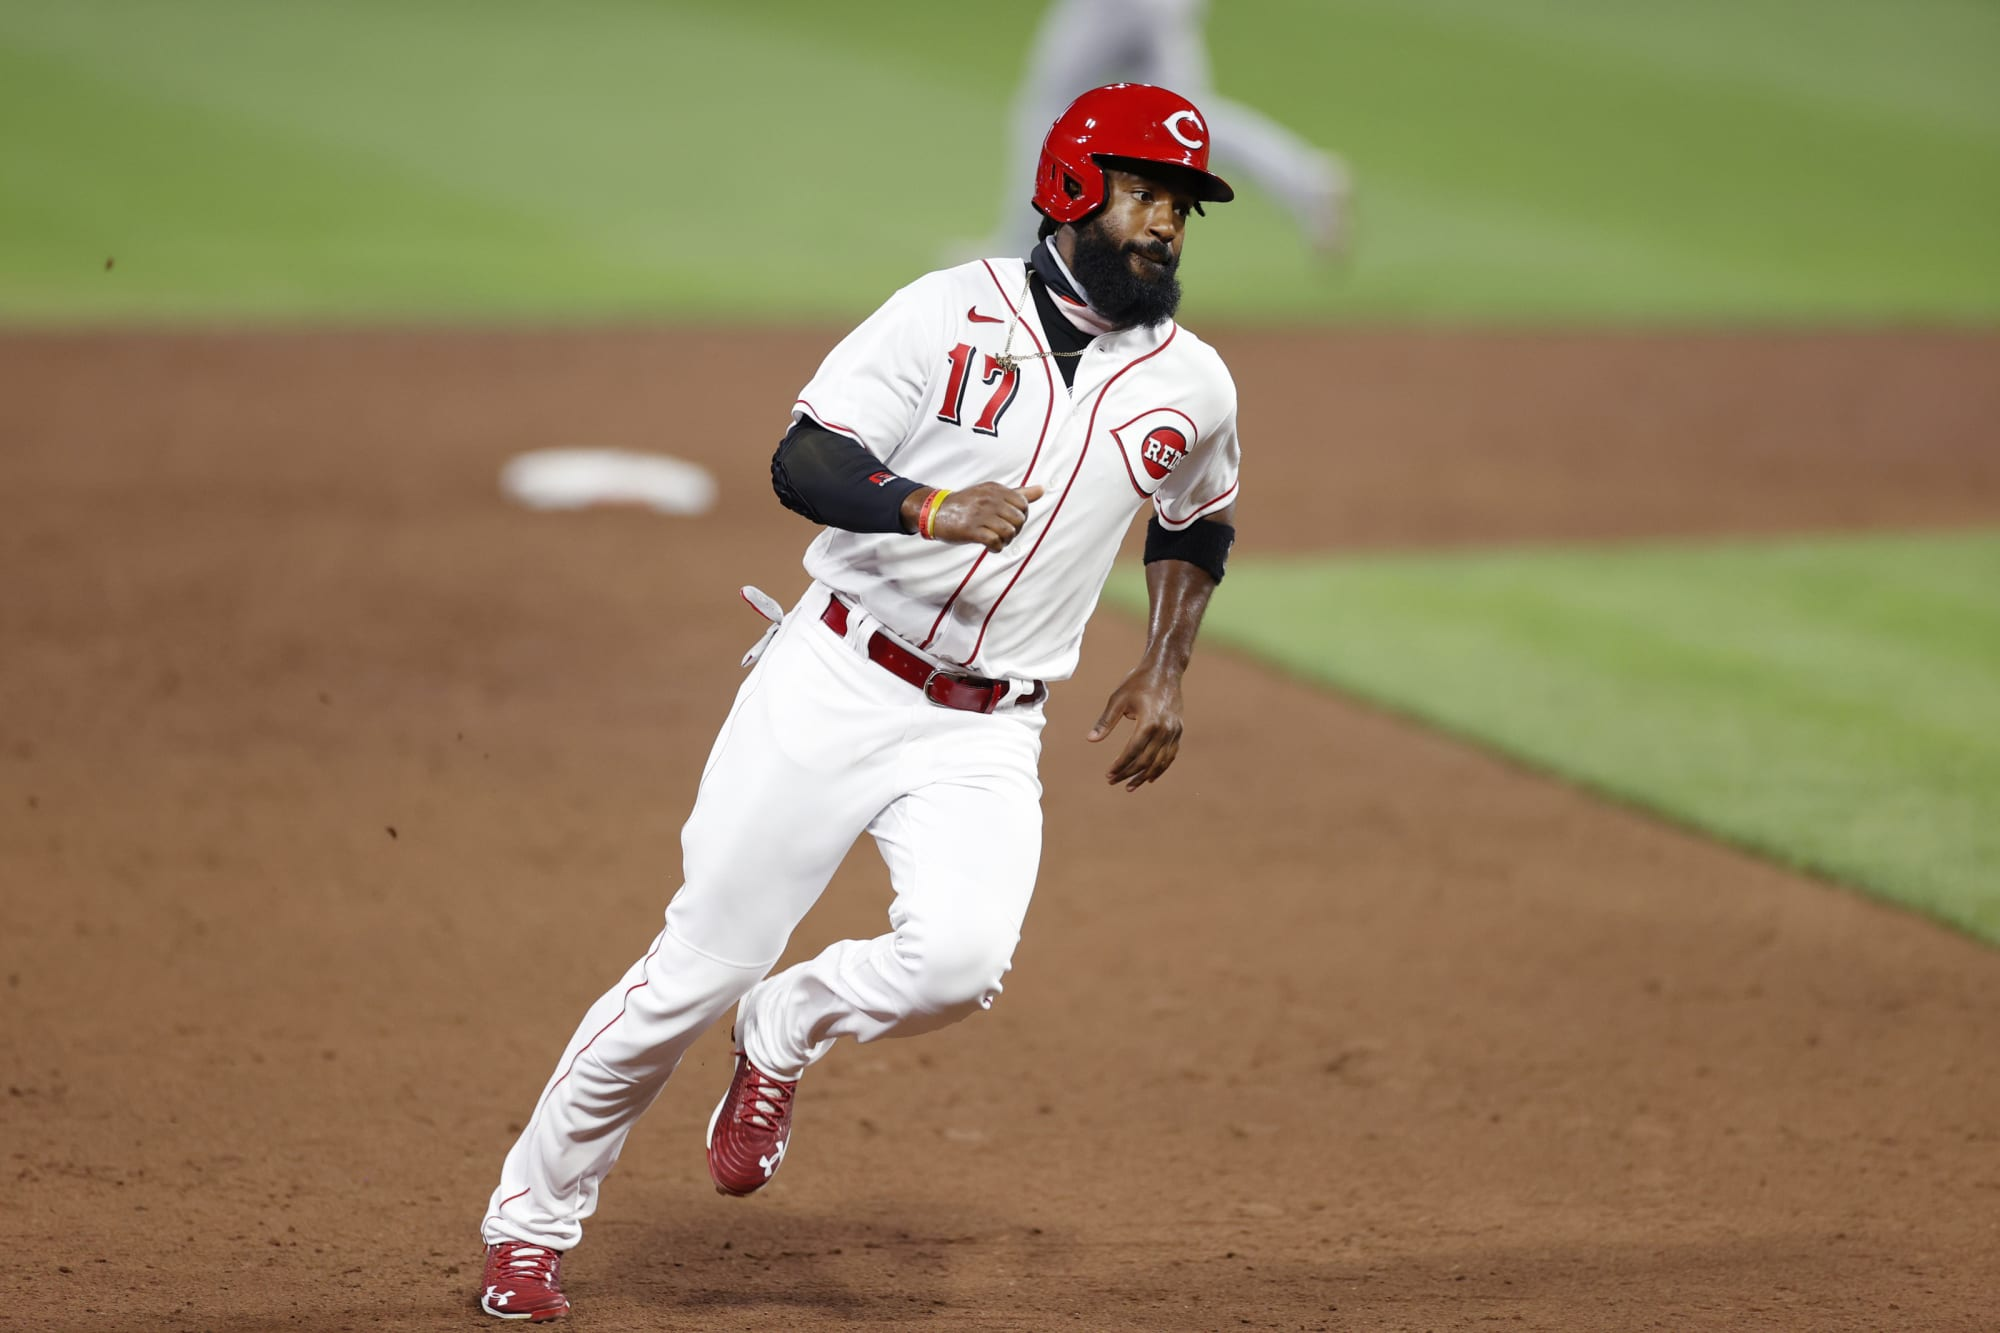 Cincinnati Reds: Arbitration eligible players hold the key to cutting costs